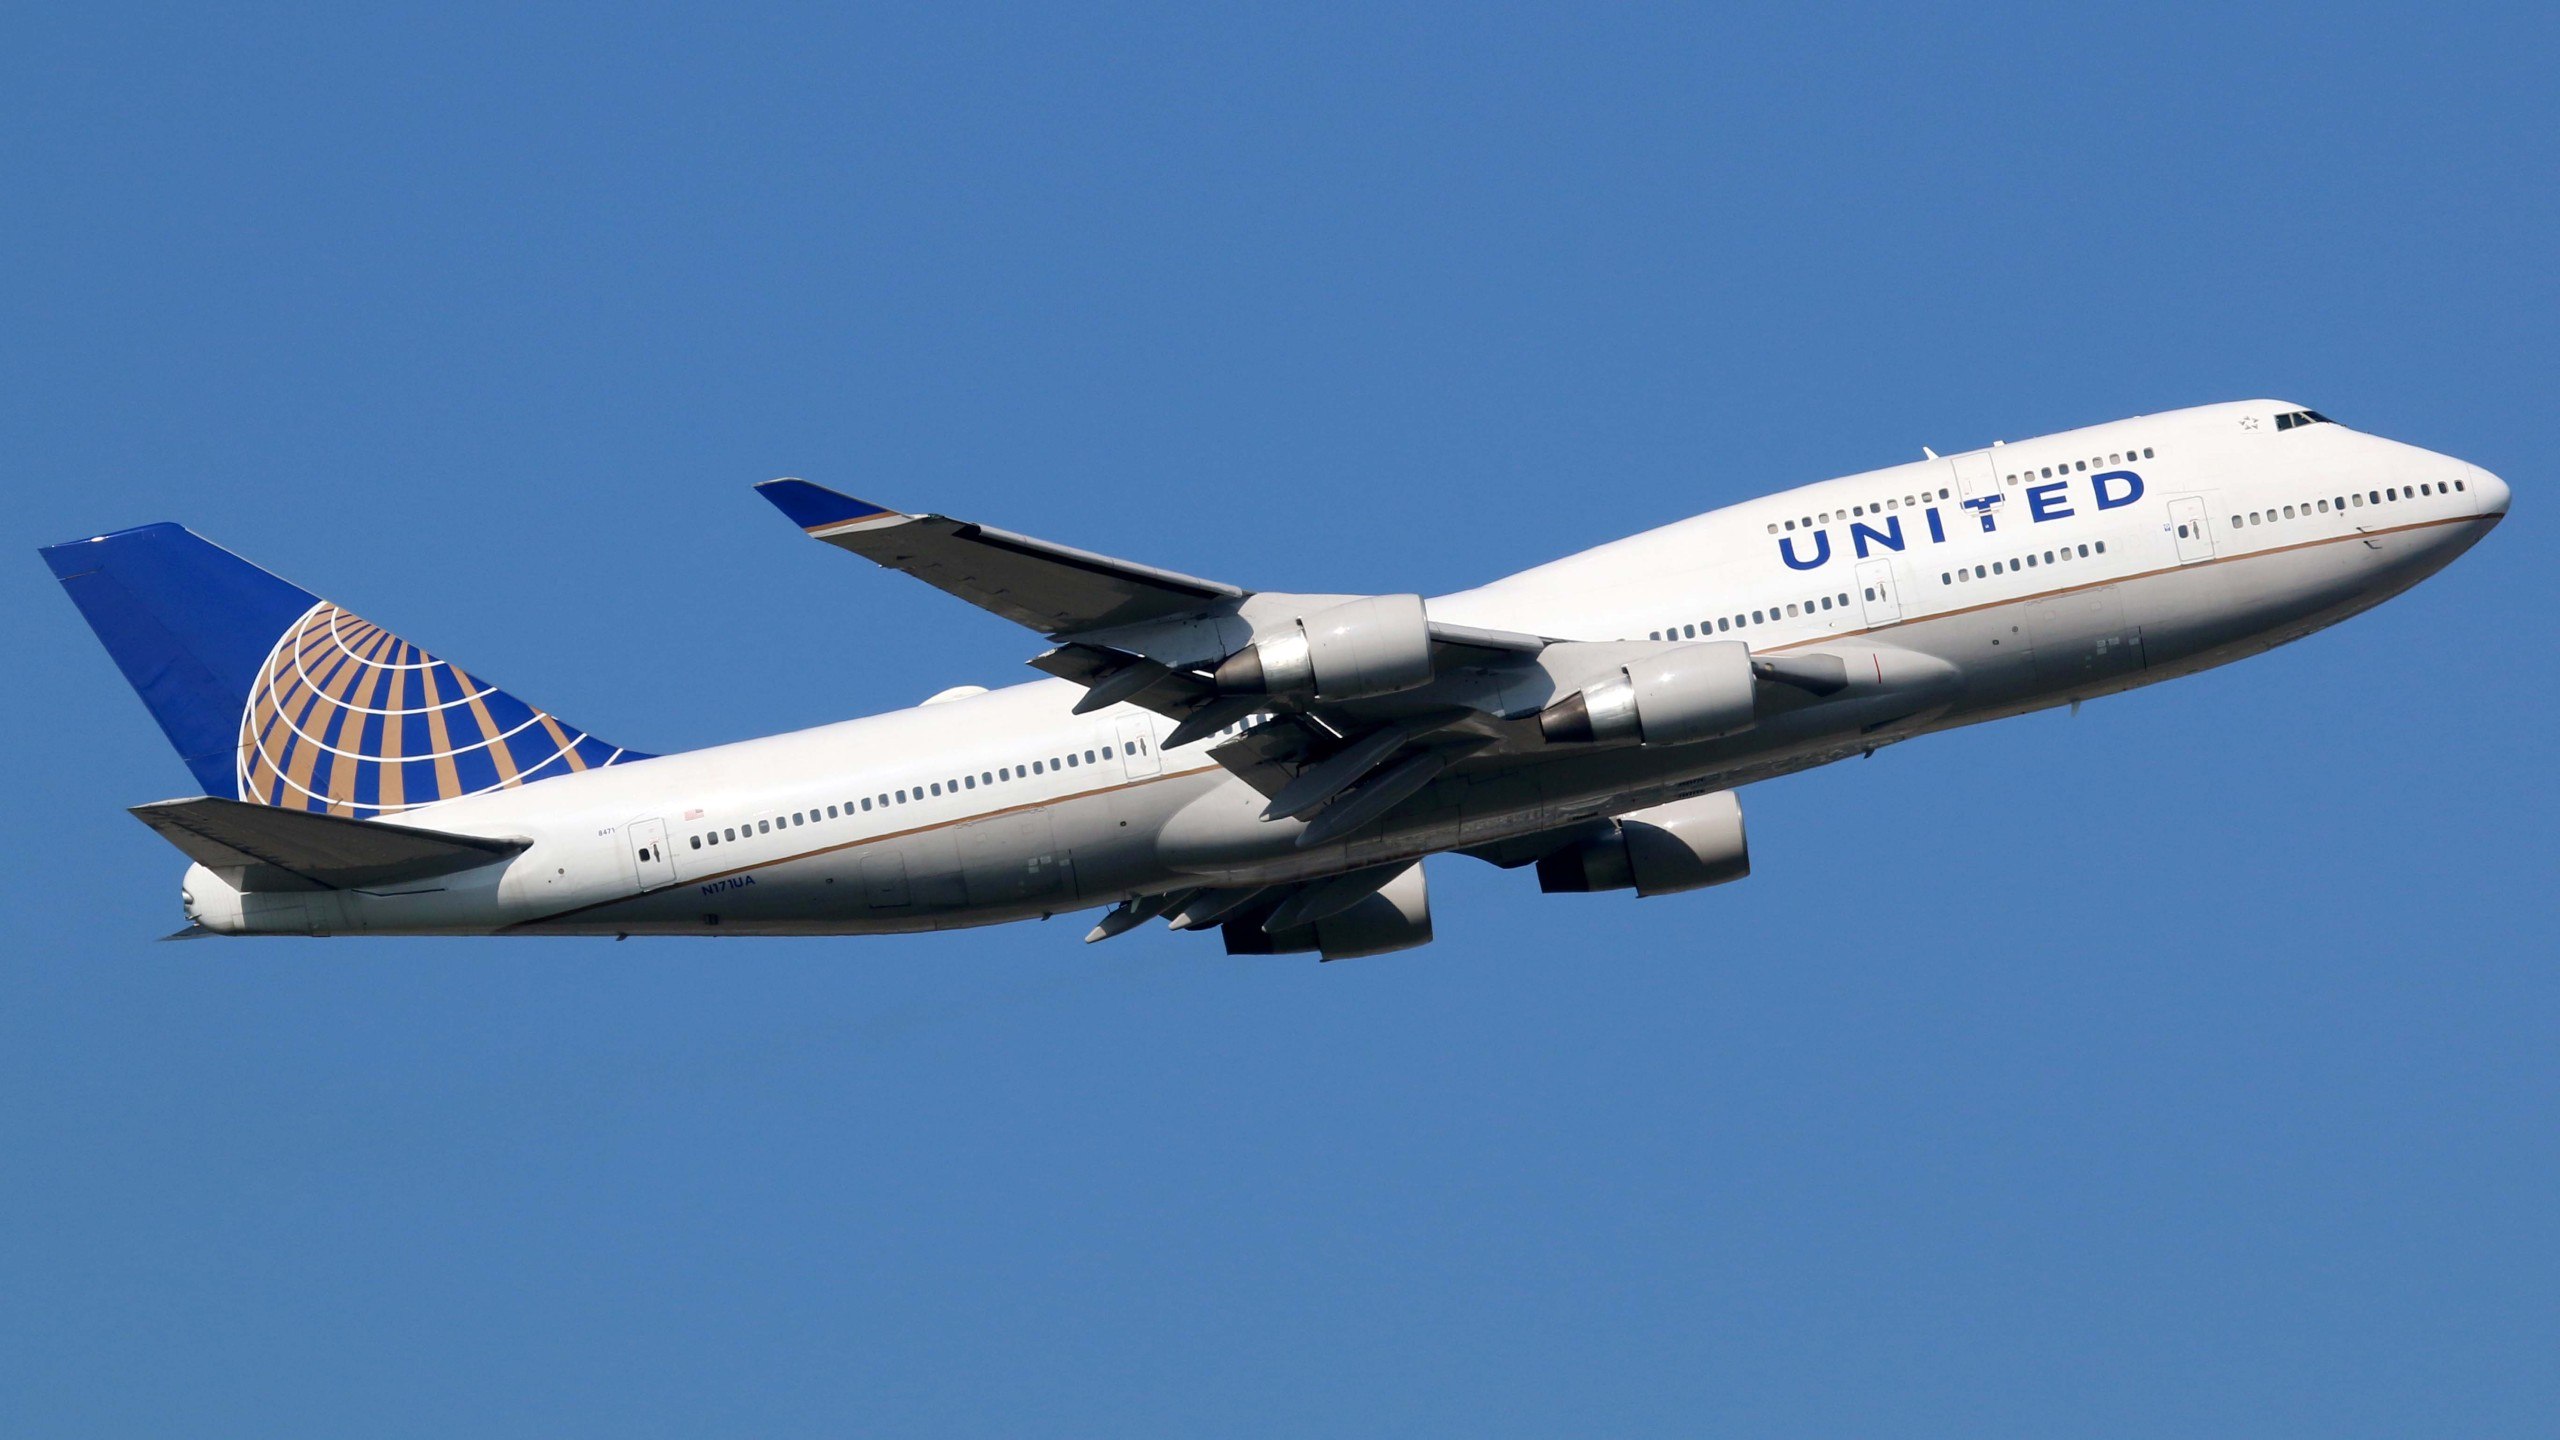 United Airlines Boeing 747-400 Airplane_1553262384034